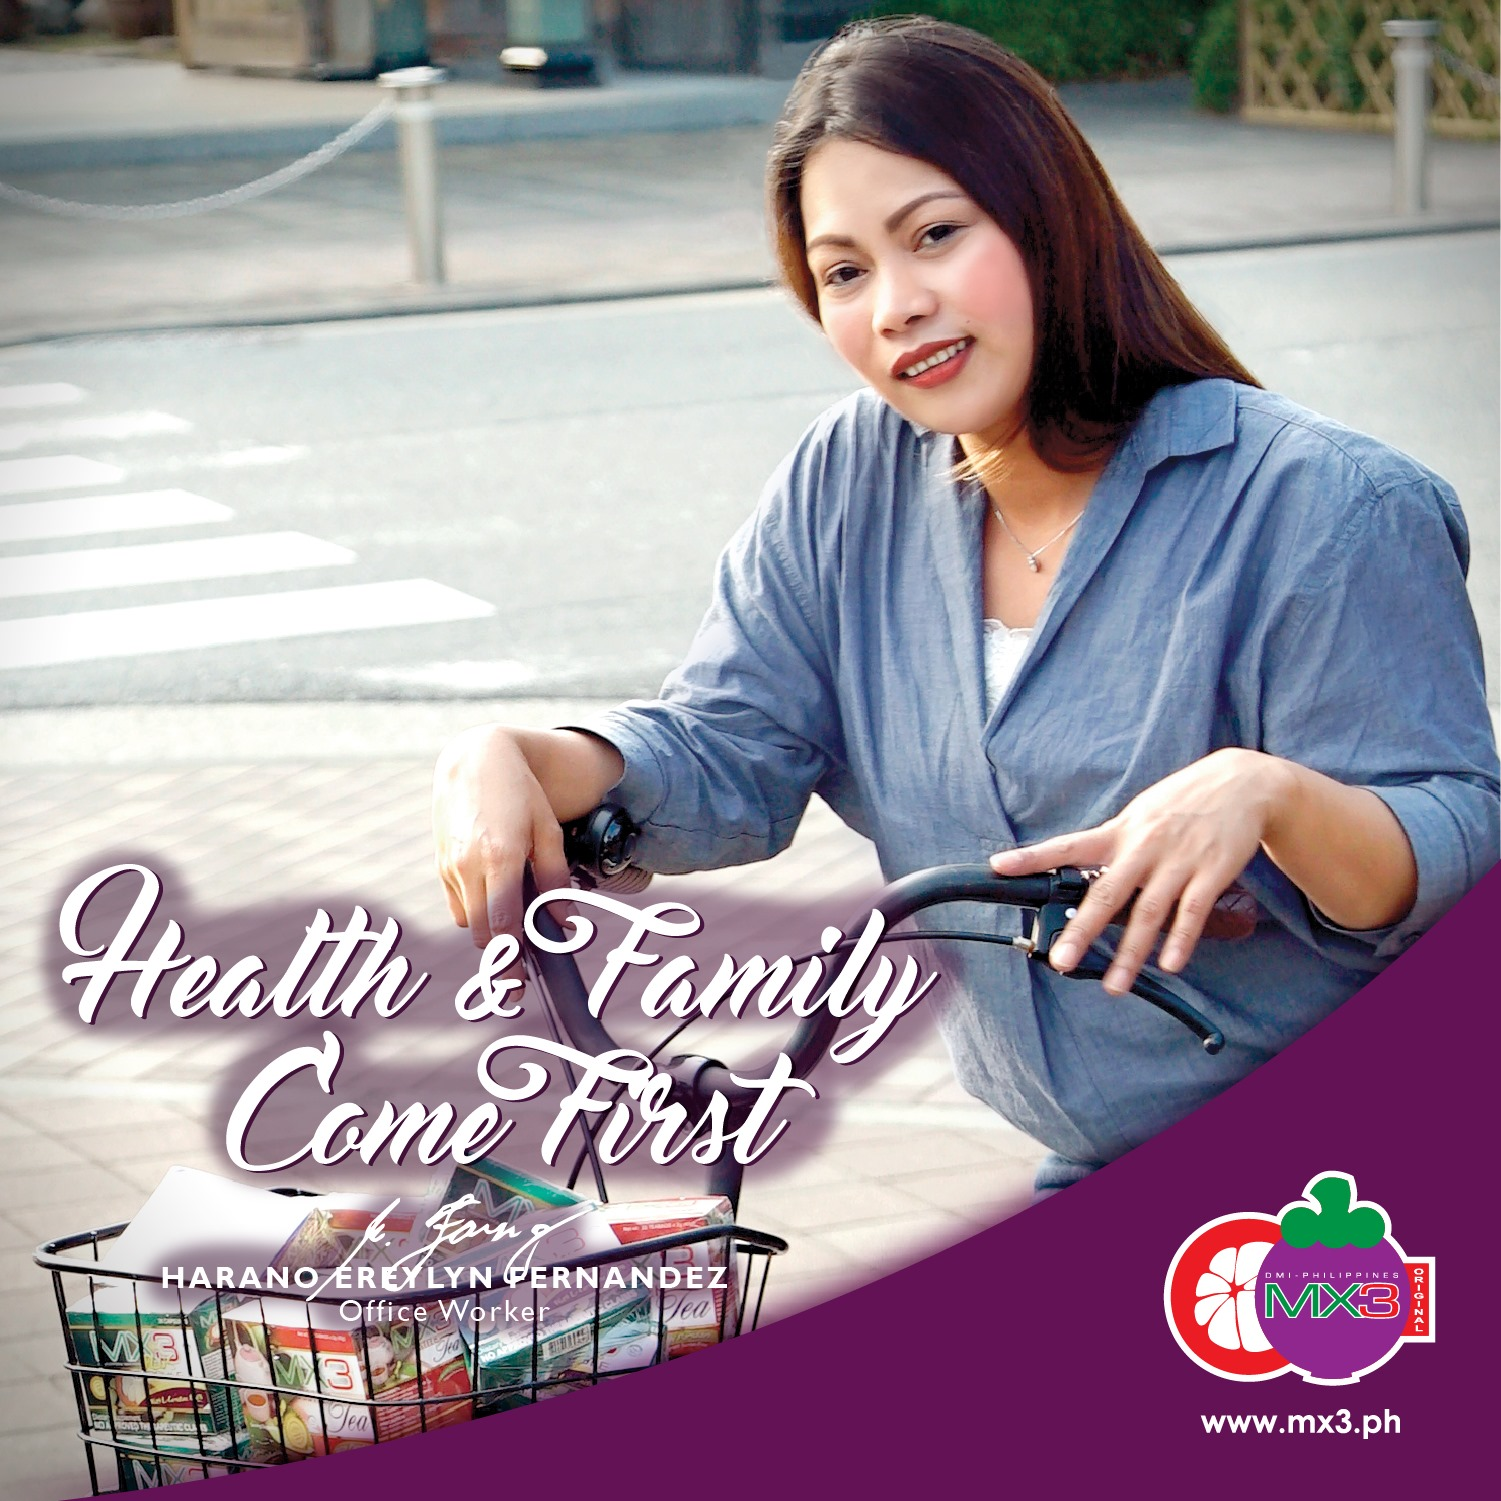 Health & Family Comes First with MX3 Capsule